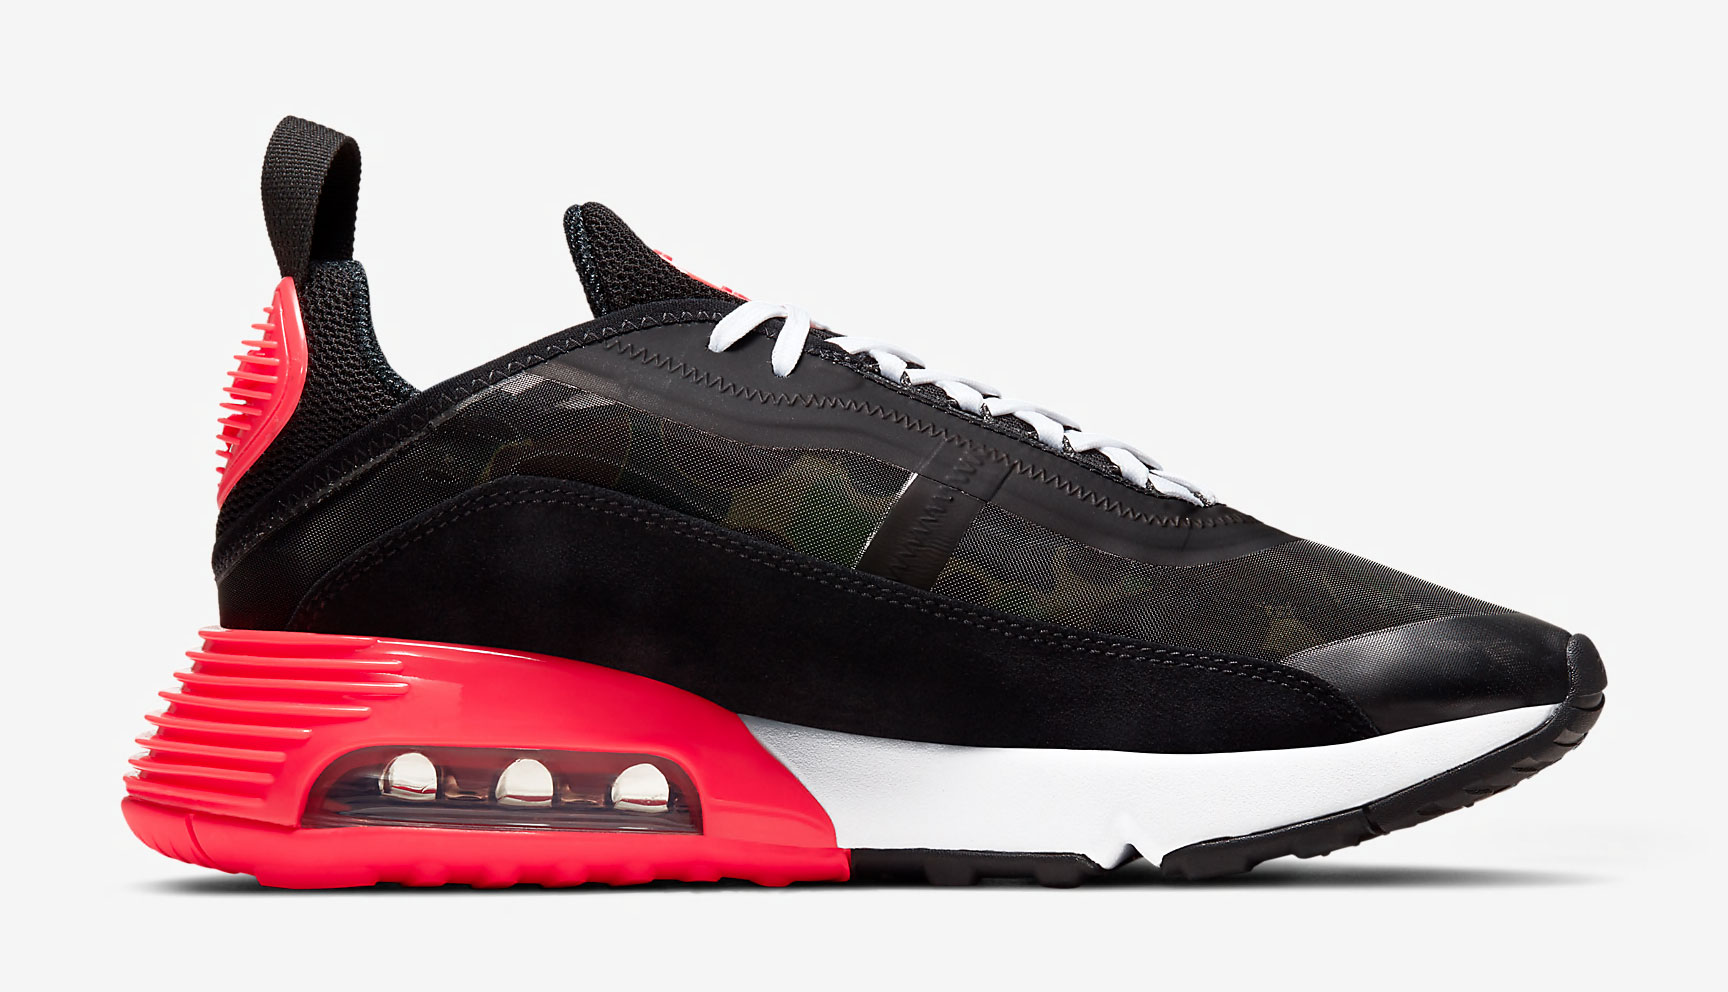 nike-air-max-2090-infrared-duck-camo-release-date-3